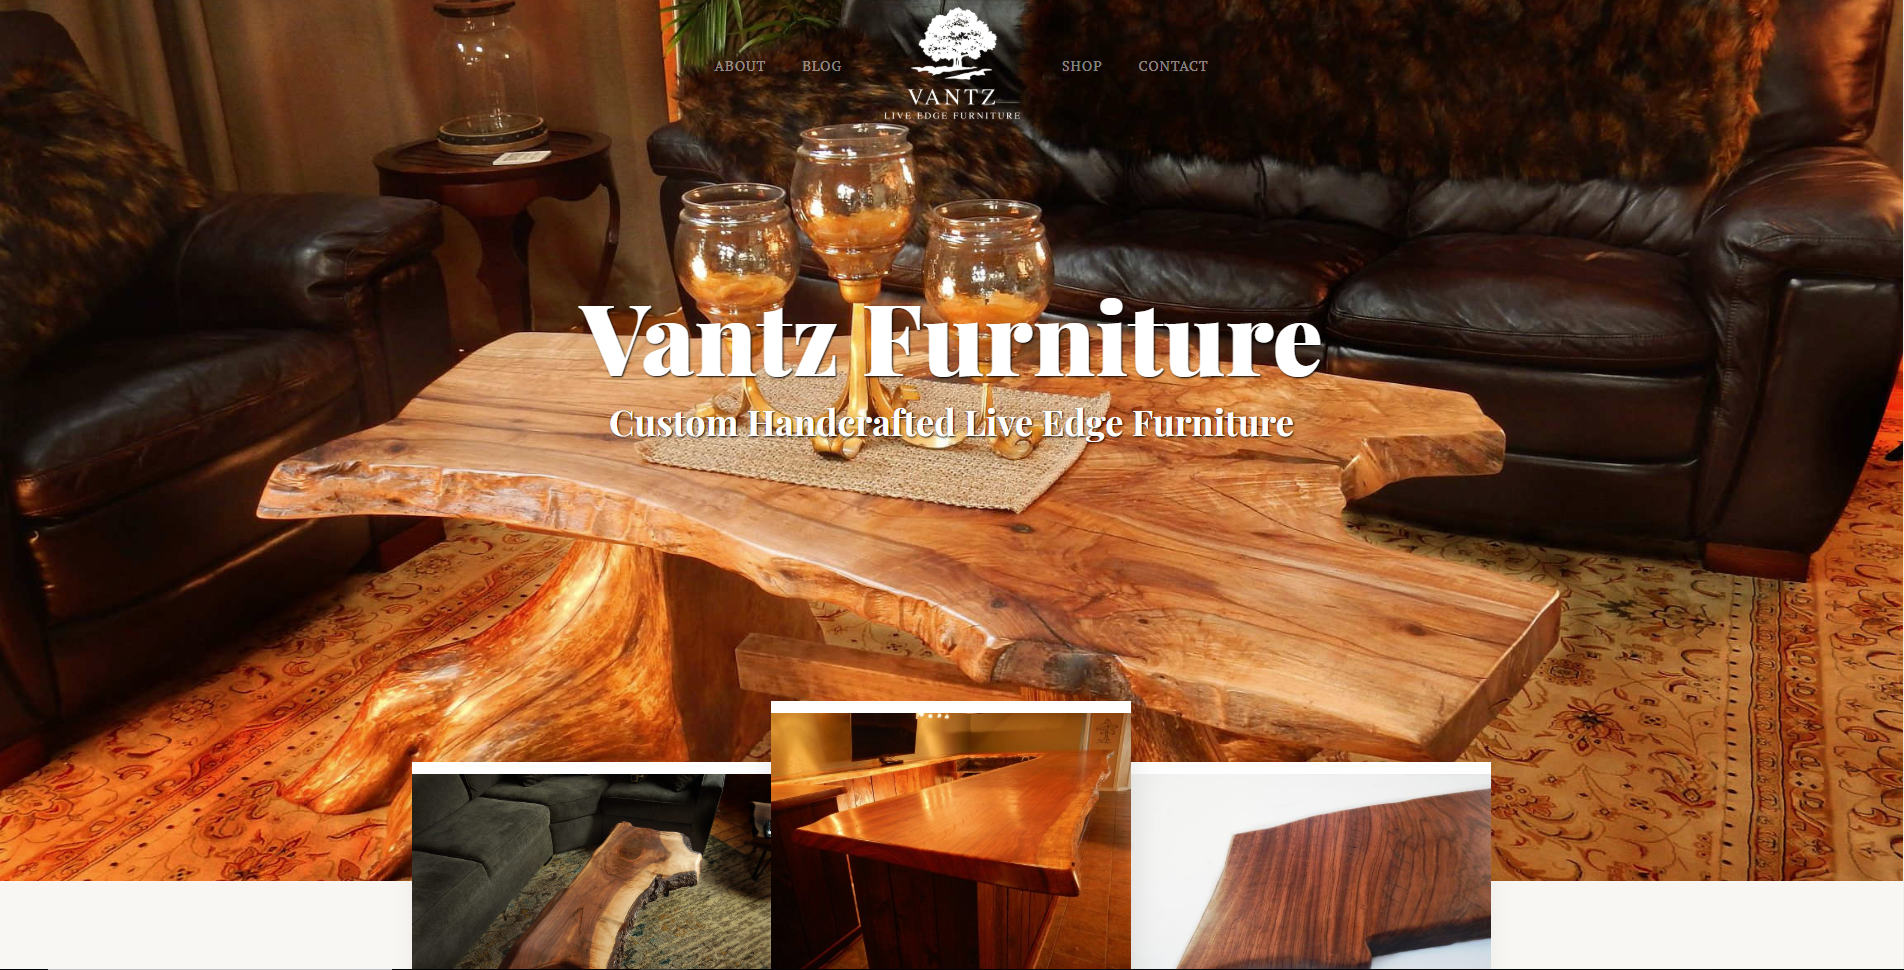 vantz furniture.png